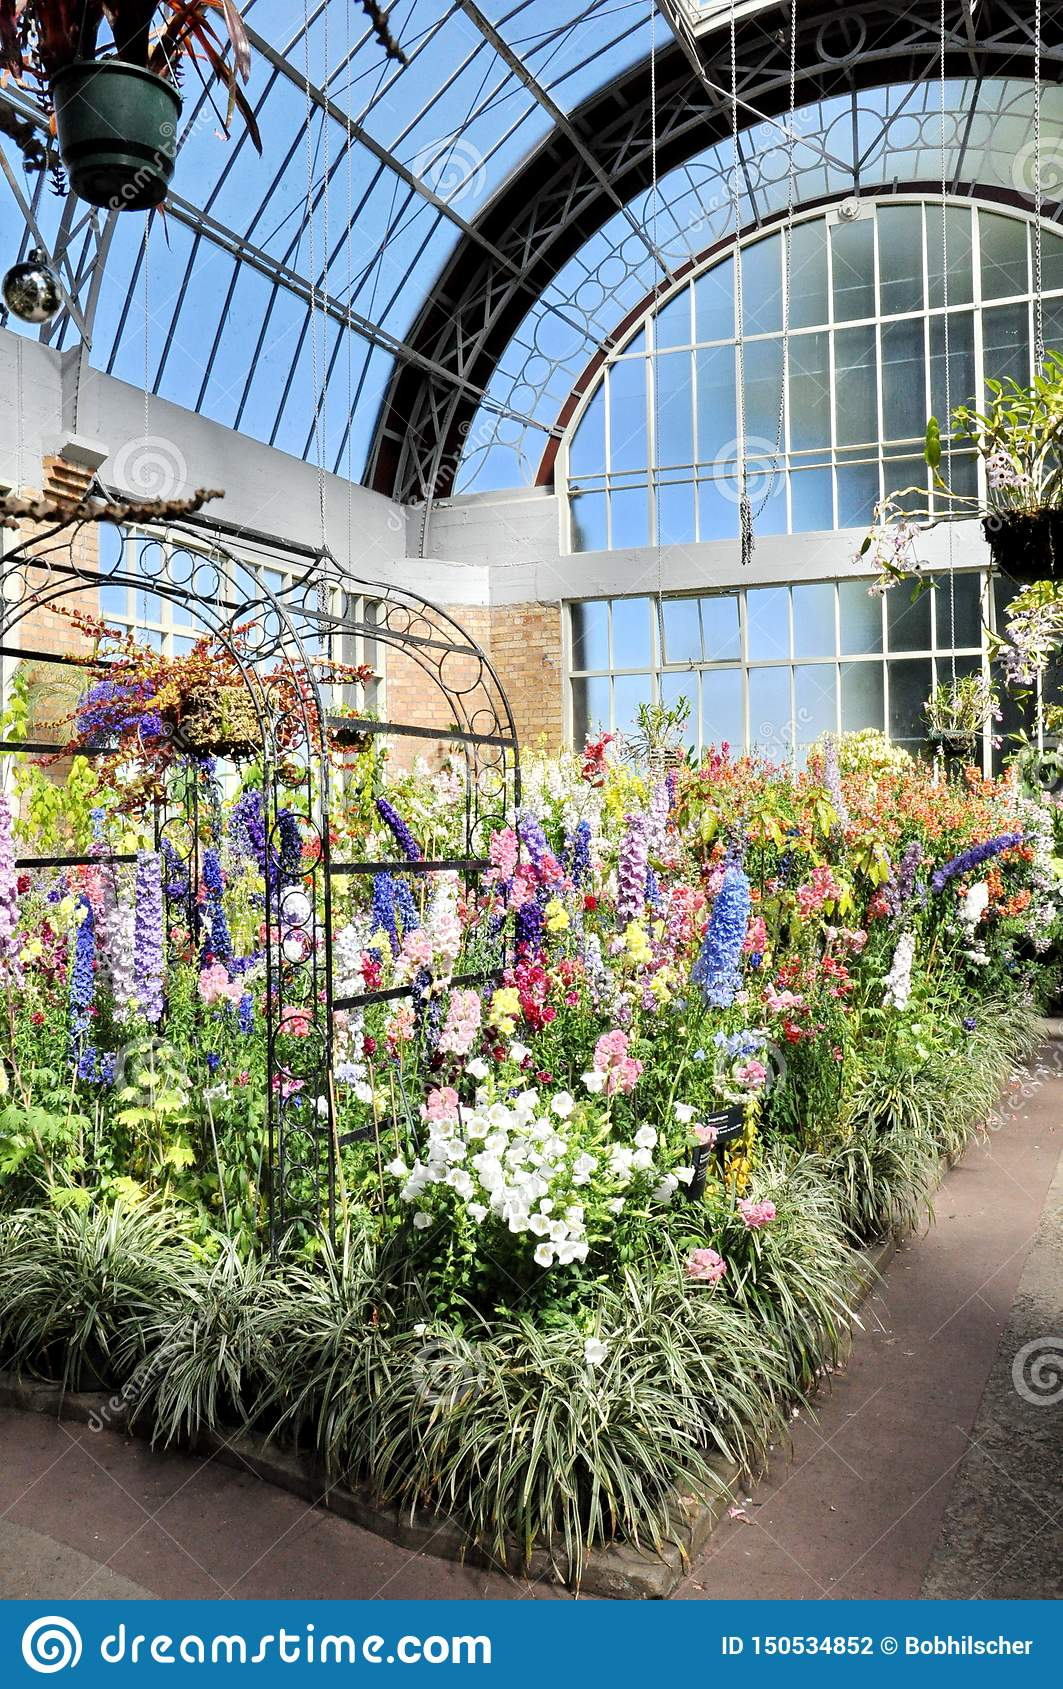 View Of Flowers Growing Inside The Tropical Hot House At The ... Plant Hot House Winter on winter potted plants, winter shade plants, winter blooming plants, winter porch plants, winter container plants, winter hibiscus, winter yard plants, winter deck plants, winter perennial plants, winter interest plants, winter flowering plants, winter fragrant plants, winter house landscaping, winter planter plants, winter house art, winter hardy plants, winter outdoor plants, winter house cookies, great winter plants, winter patio plants,